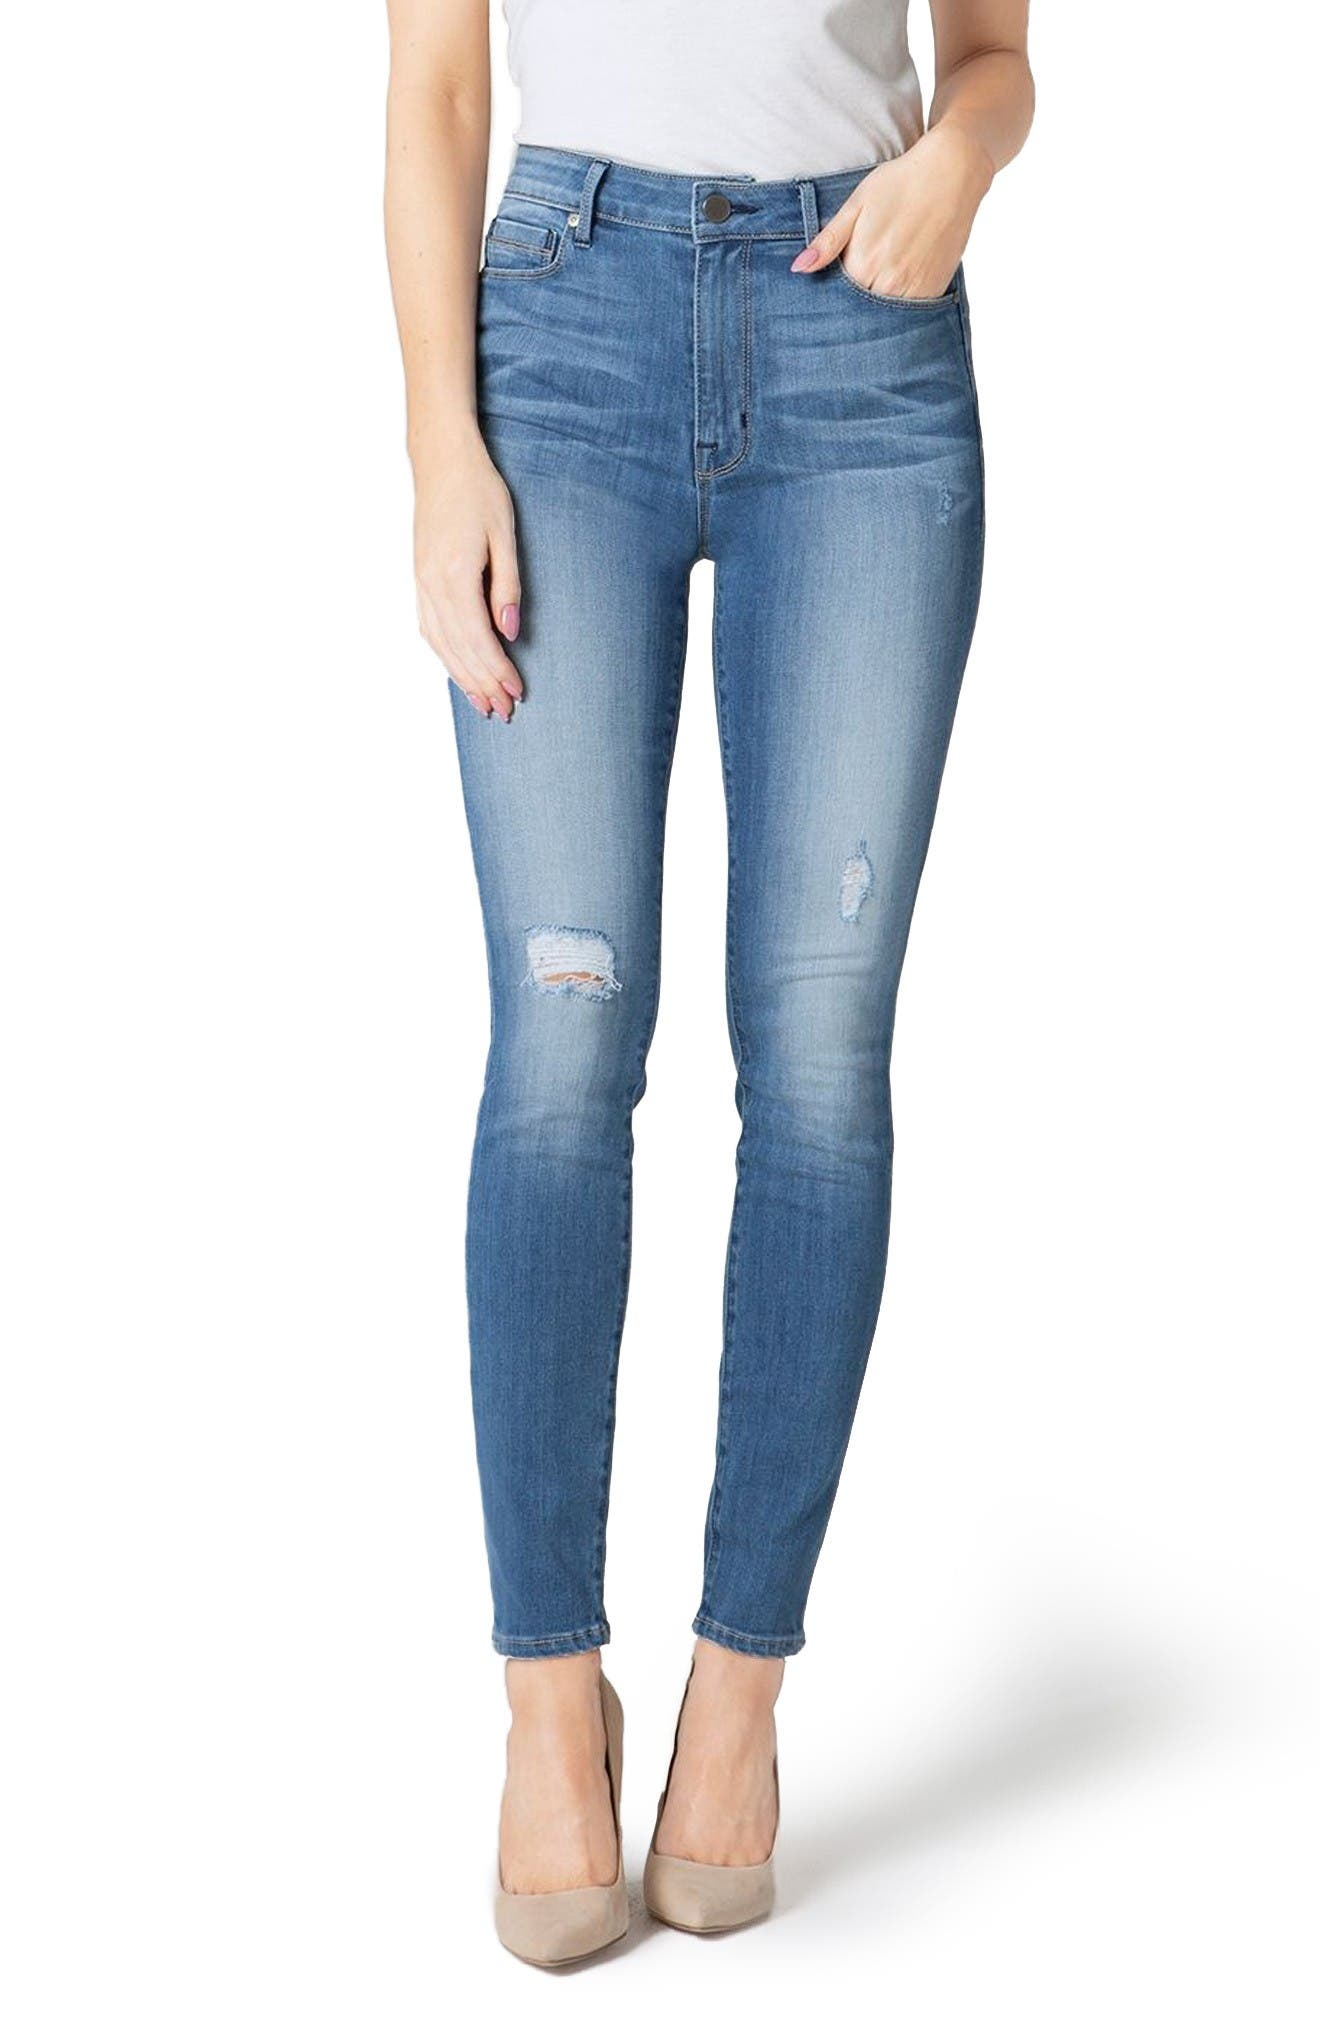 Bombshell High Waist Stretch Skinny Jeans,                         Main,                         color, Gulf Stream